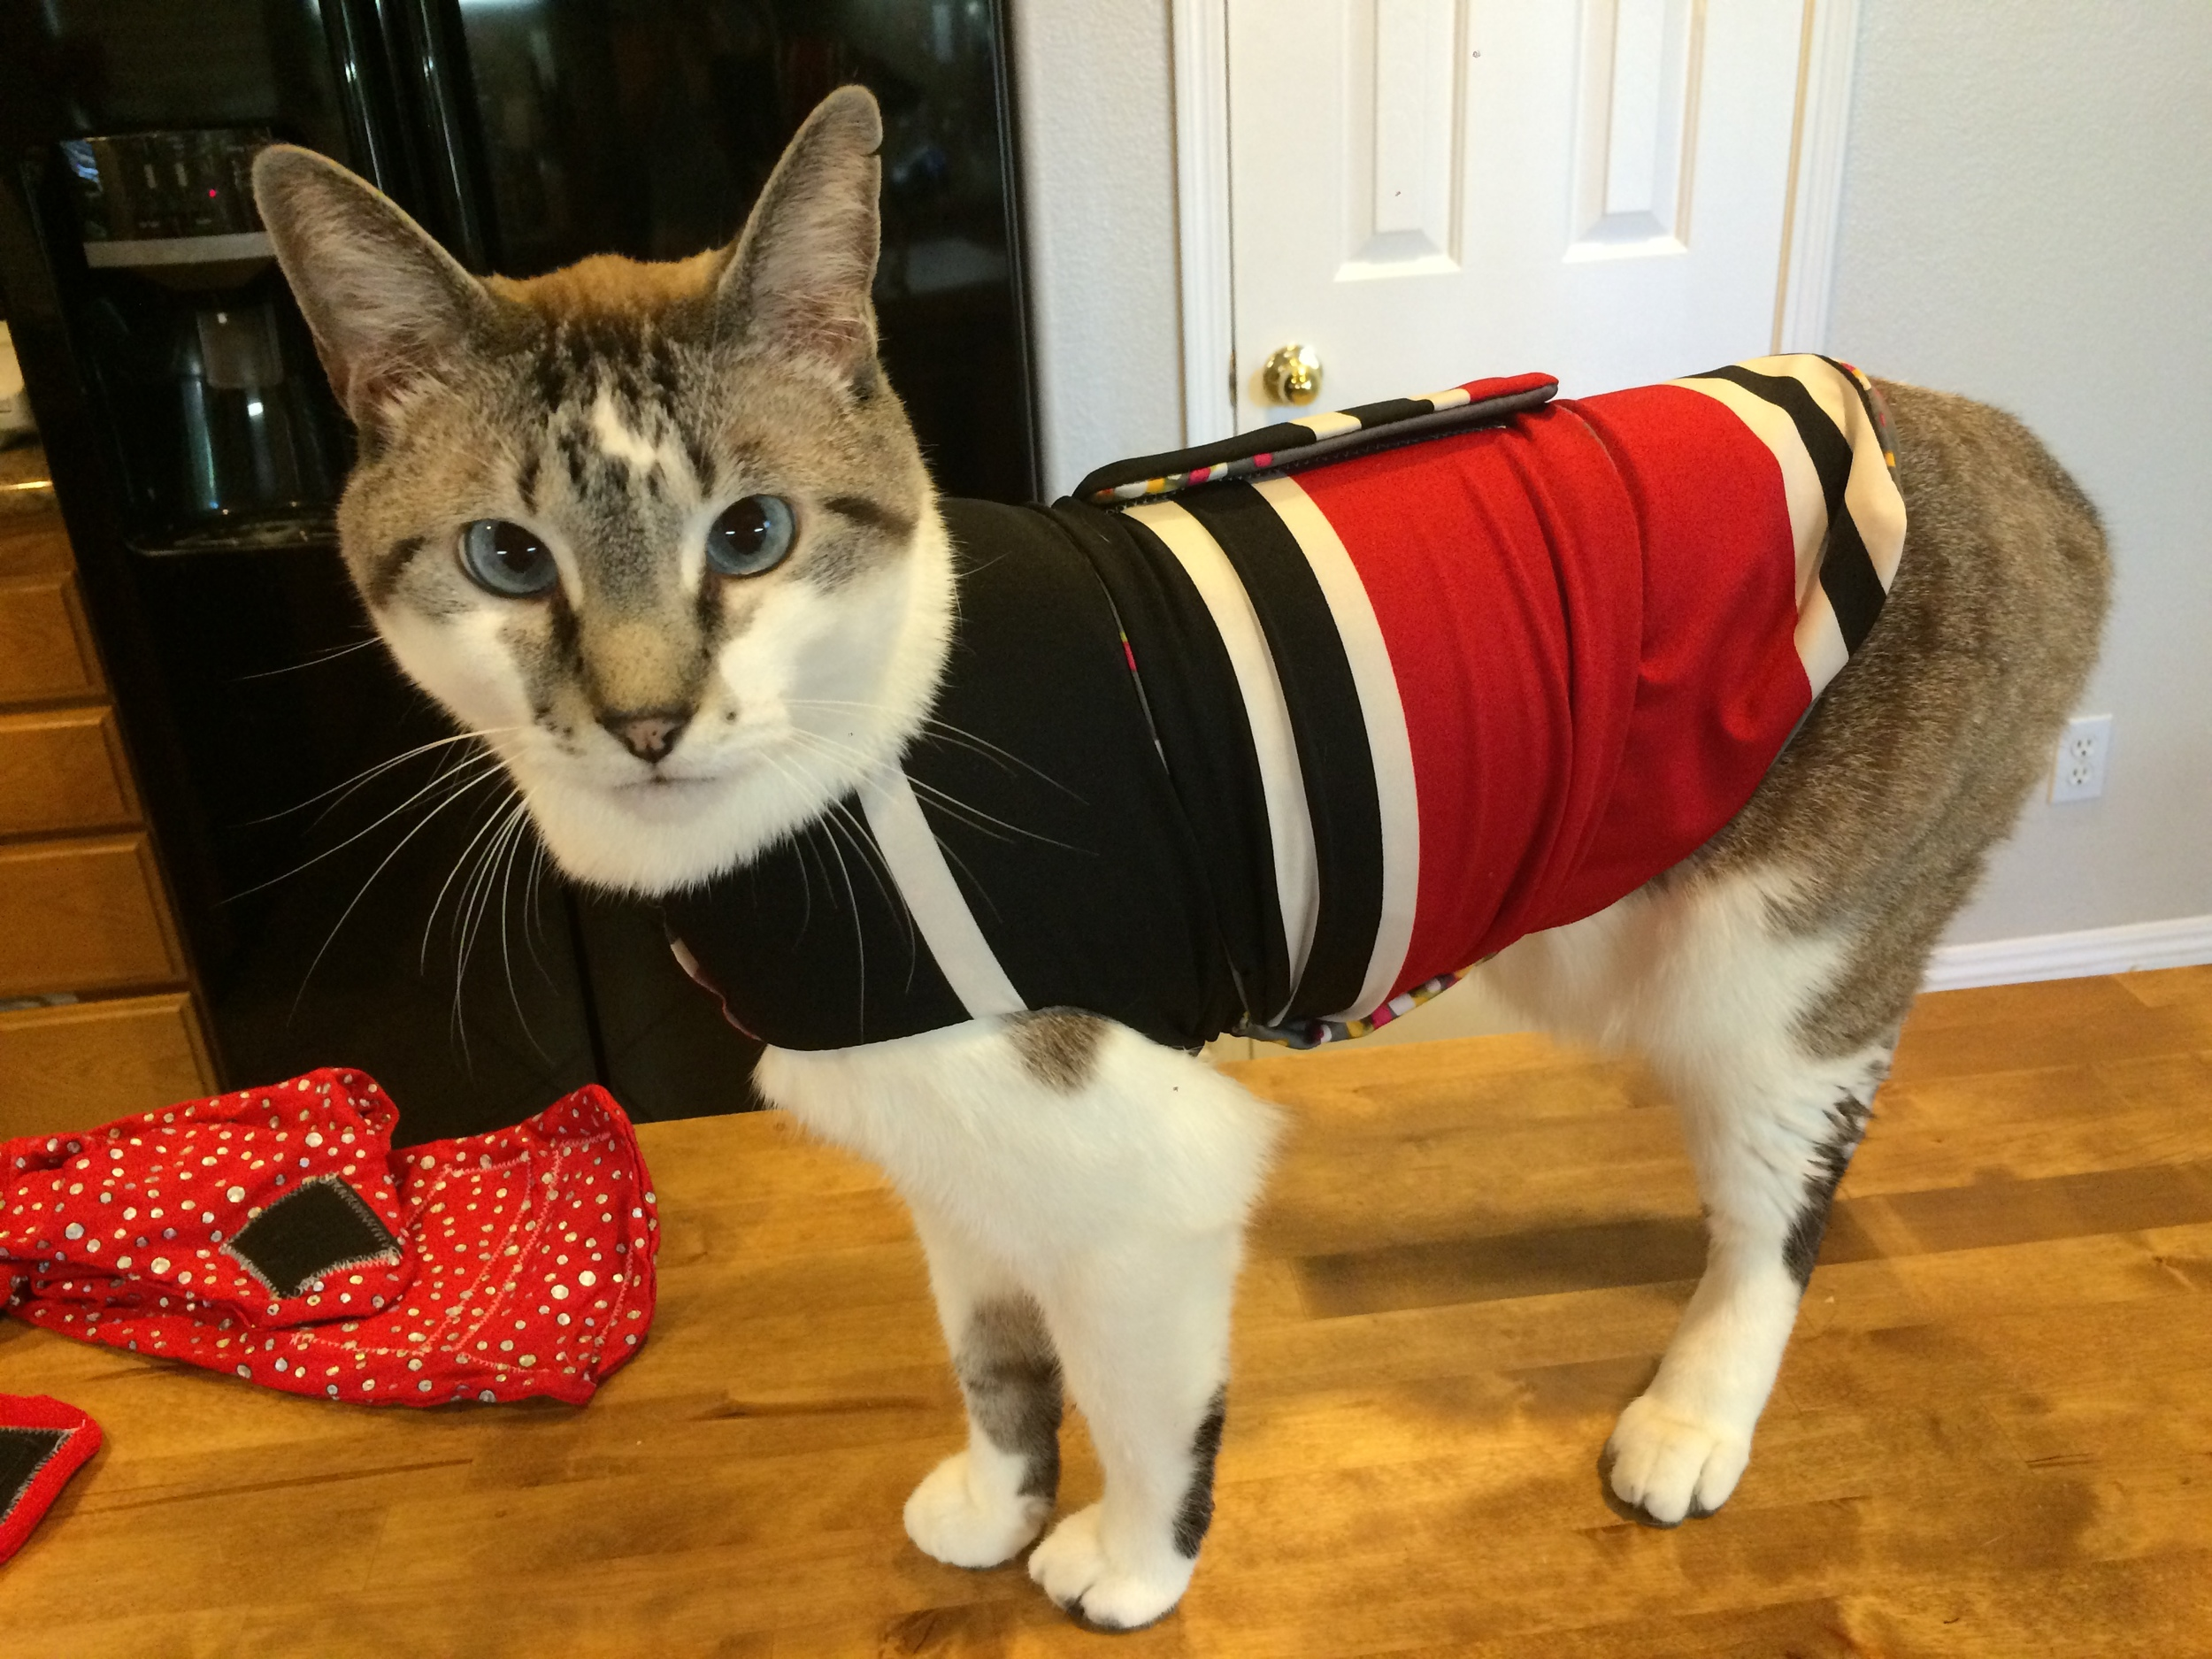 My husband says Milo looks like he's an Olympic athlete from Yemen and he's wearing his country's flag during the medal ceremony. I call this Milo's Yemen shirt.